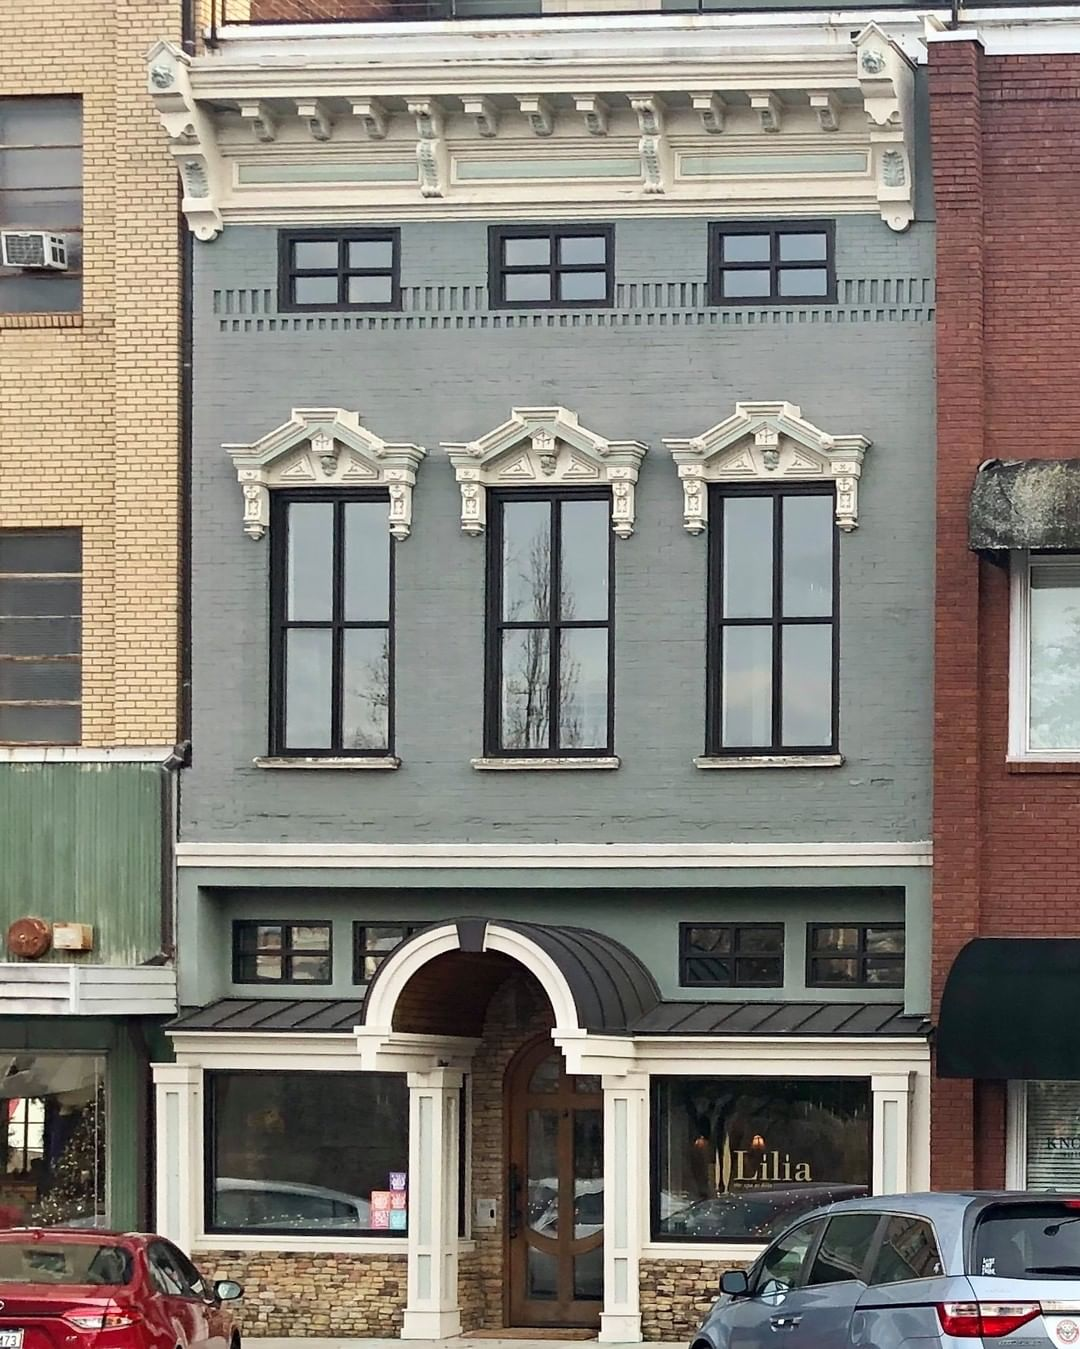 This building in Anderson was built ca. 1890. This building has served as the home to many businesses during its 130 years